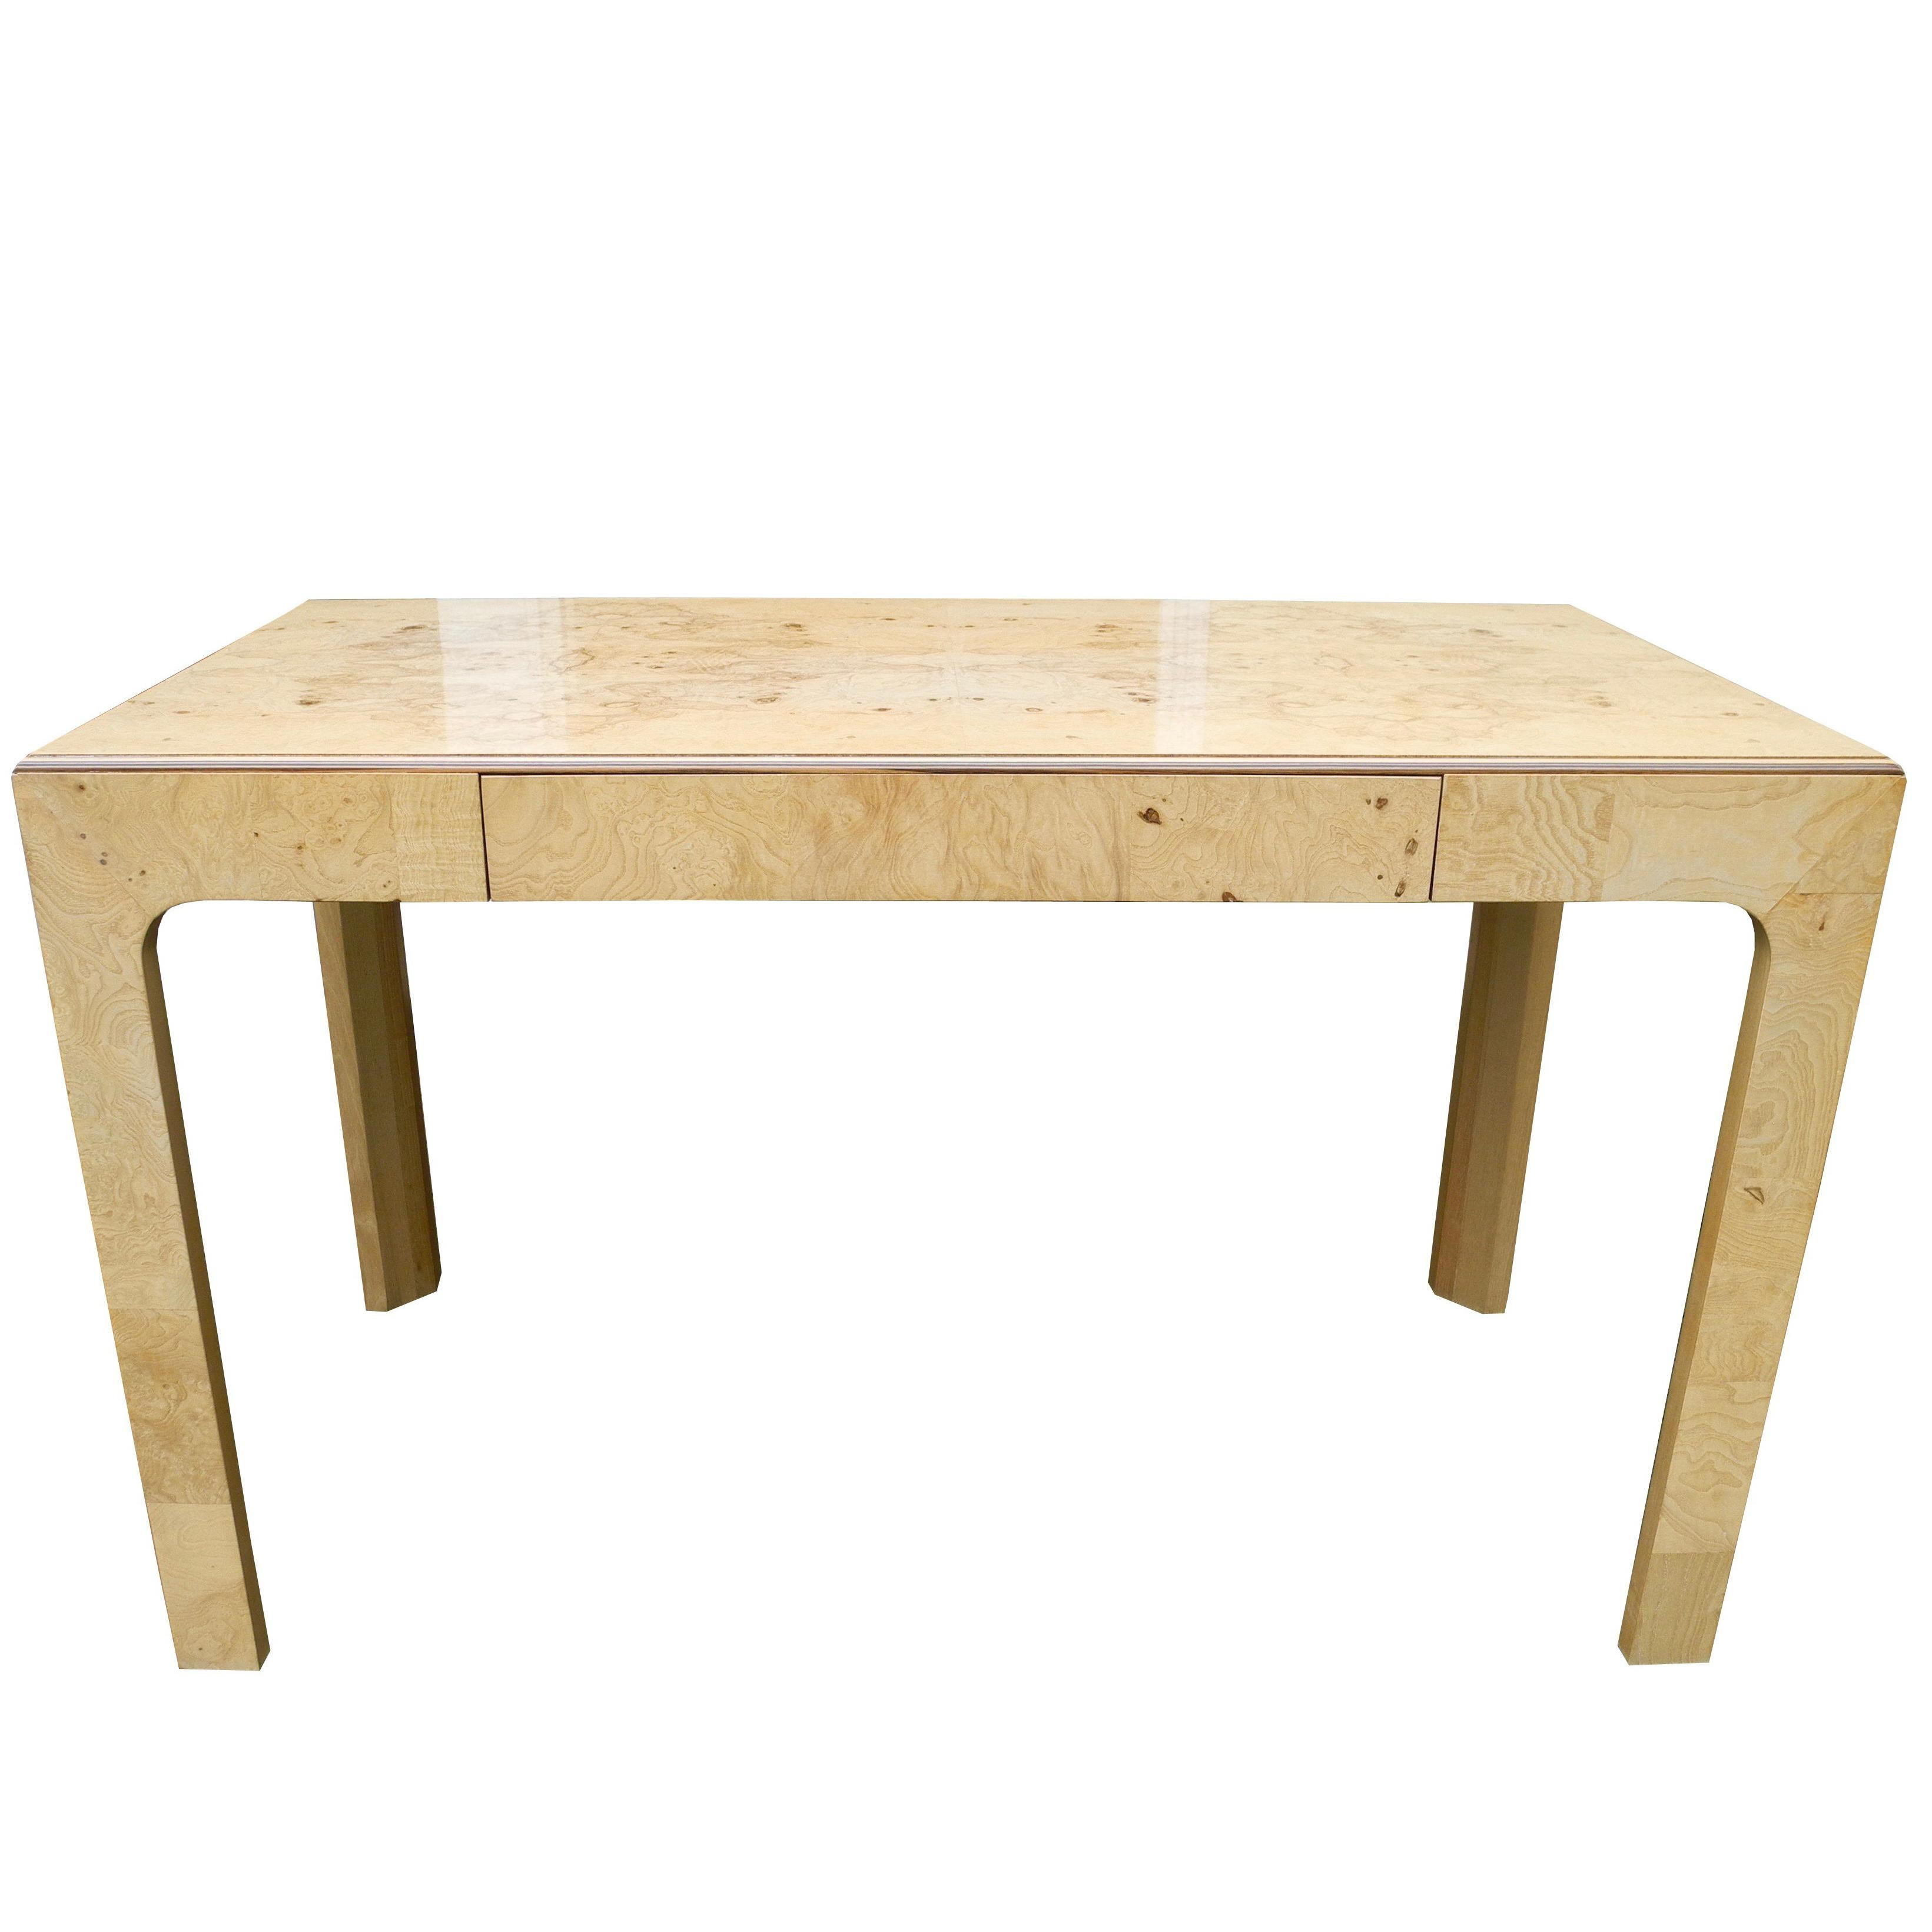 Modern Travertine Top Single Drawer Desk By Henredon With Br Hardware For At 1stdibs